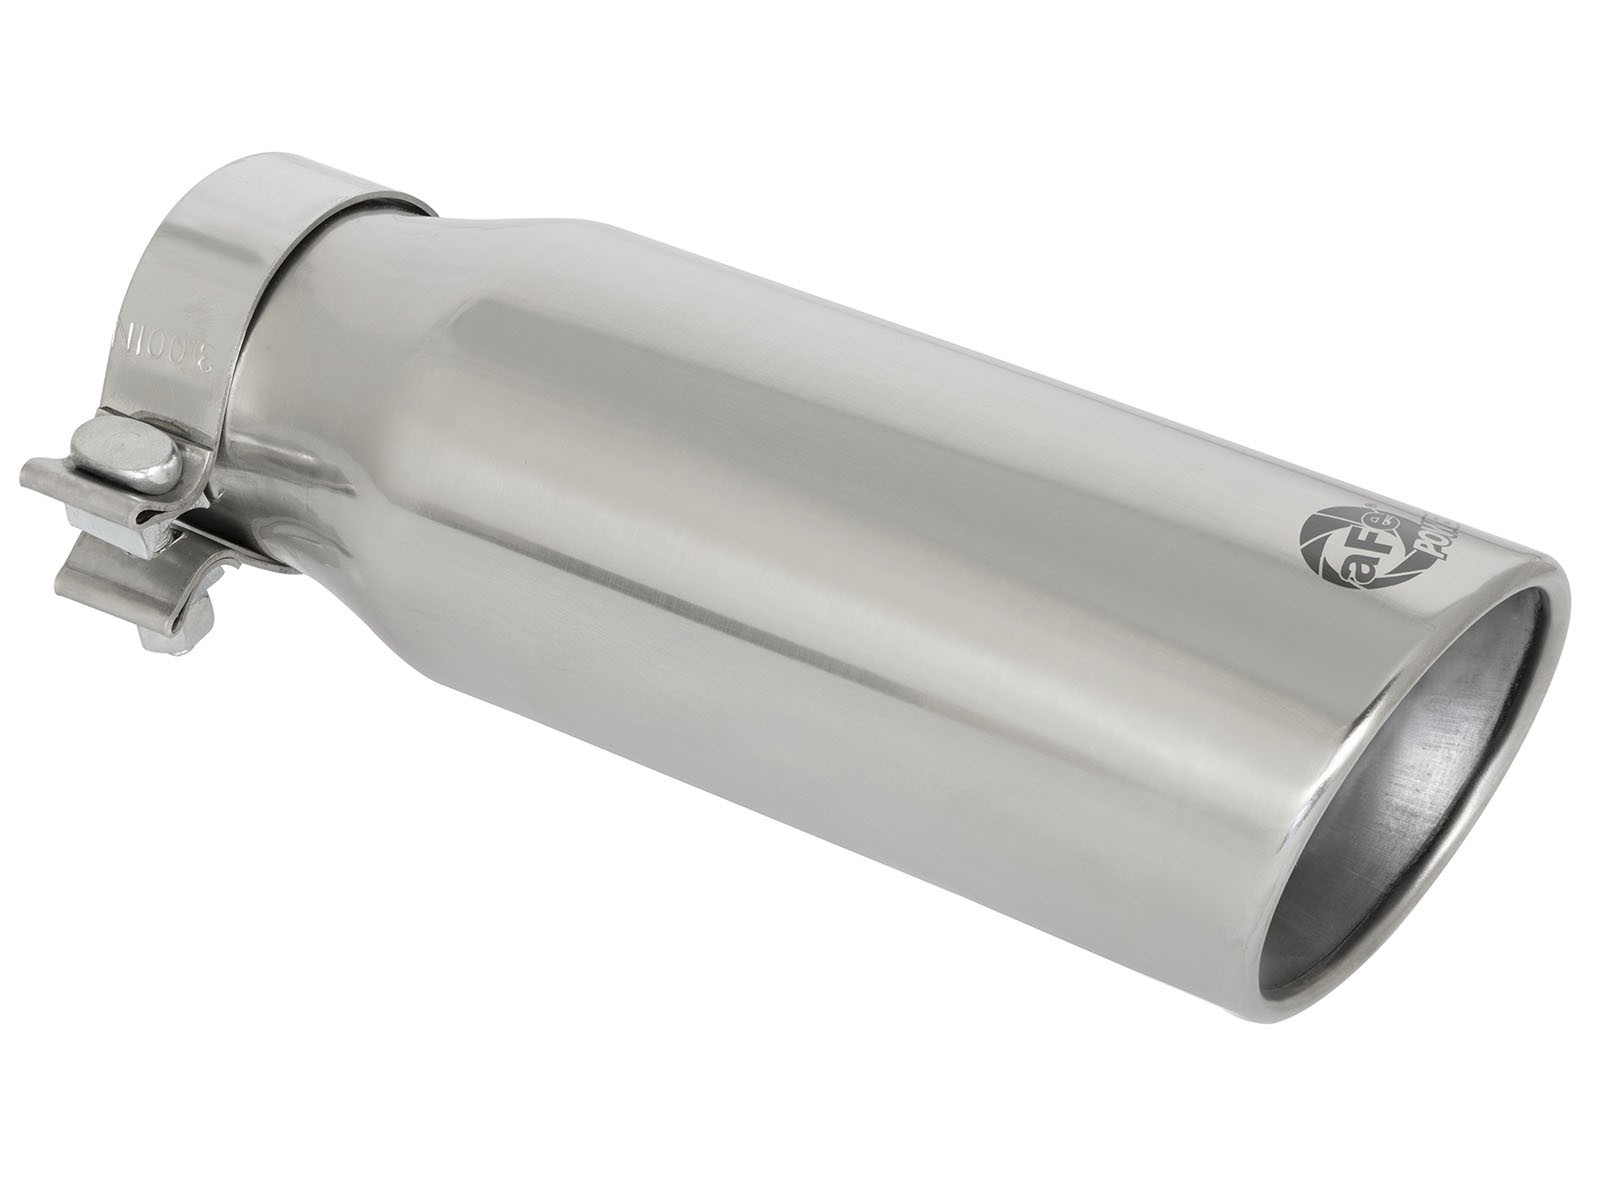 """aFe POWER 49T30404-P121 MACH Force-Xp 3"""" 304 Stainless Steel Exhaust Tip"""